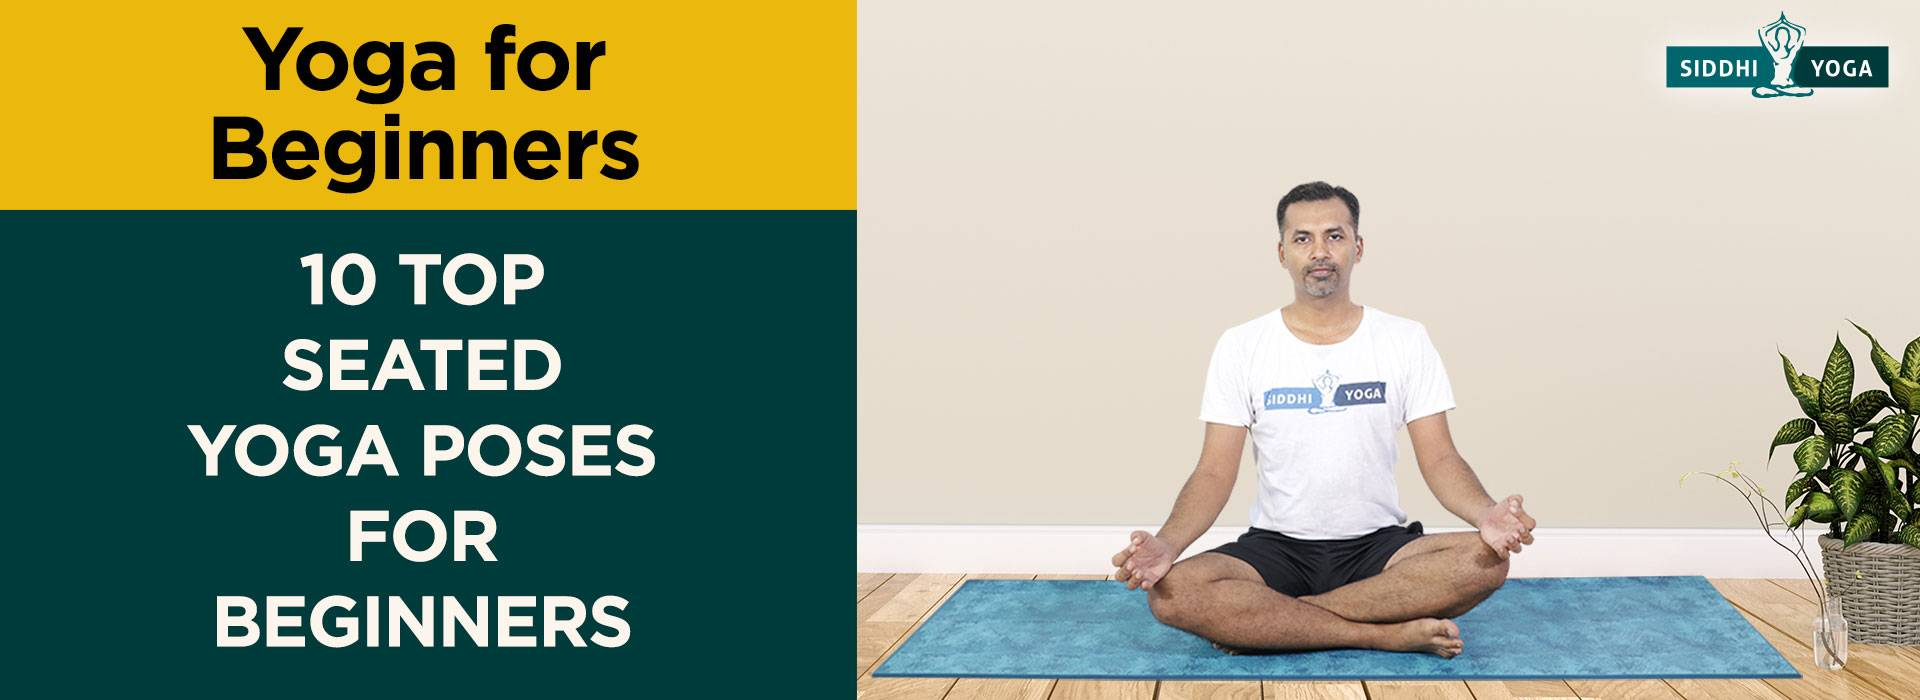 50 Top Seated Yoga Poses For Beginners  Siddhi Yoga